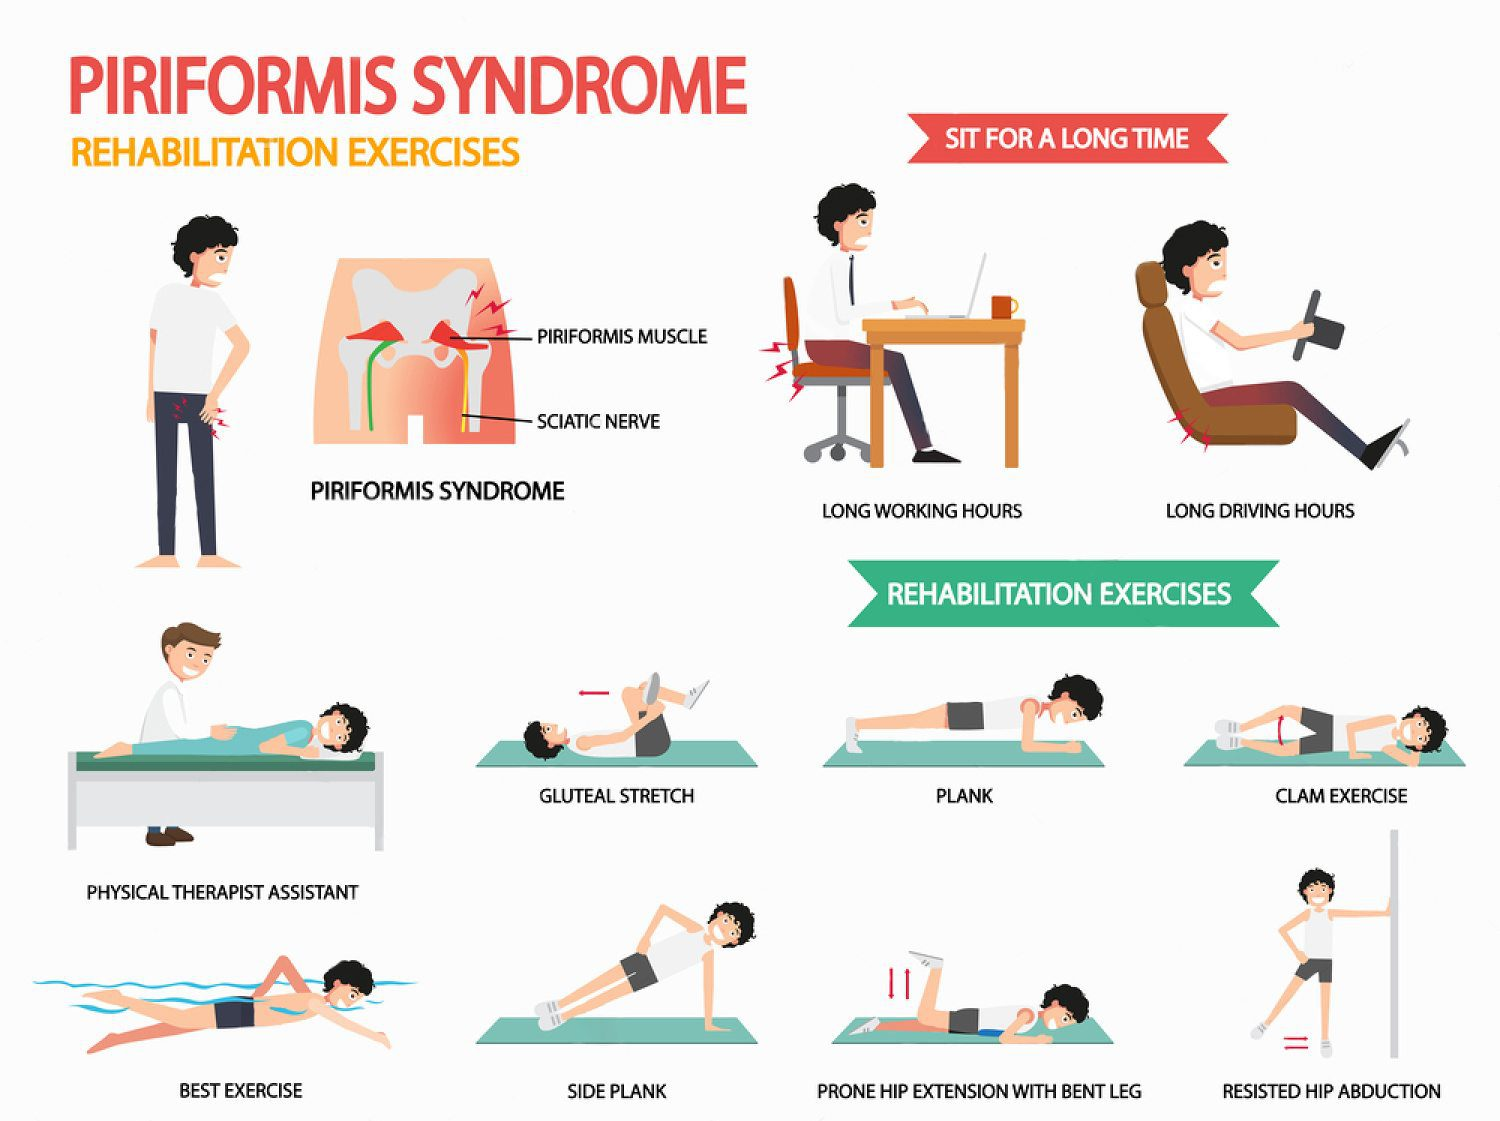 Causes des exercices de rééducation du syndrome de Piriformis piriformis